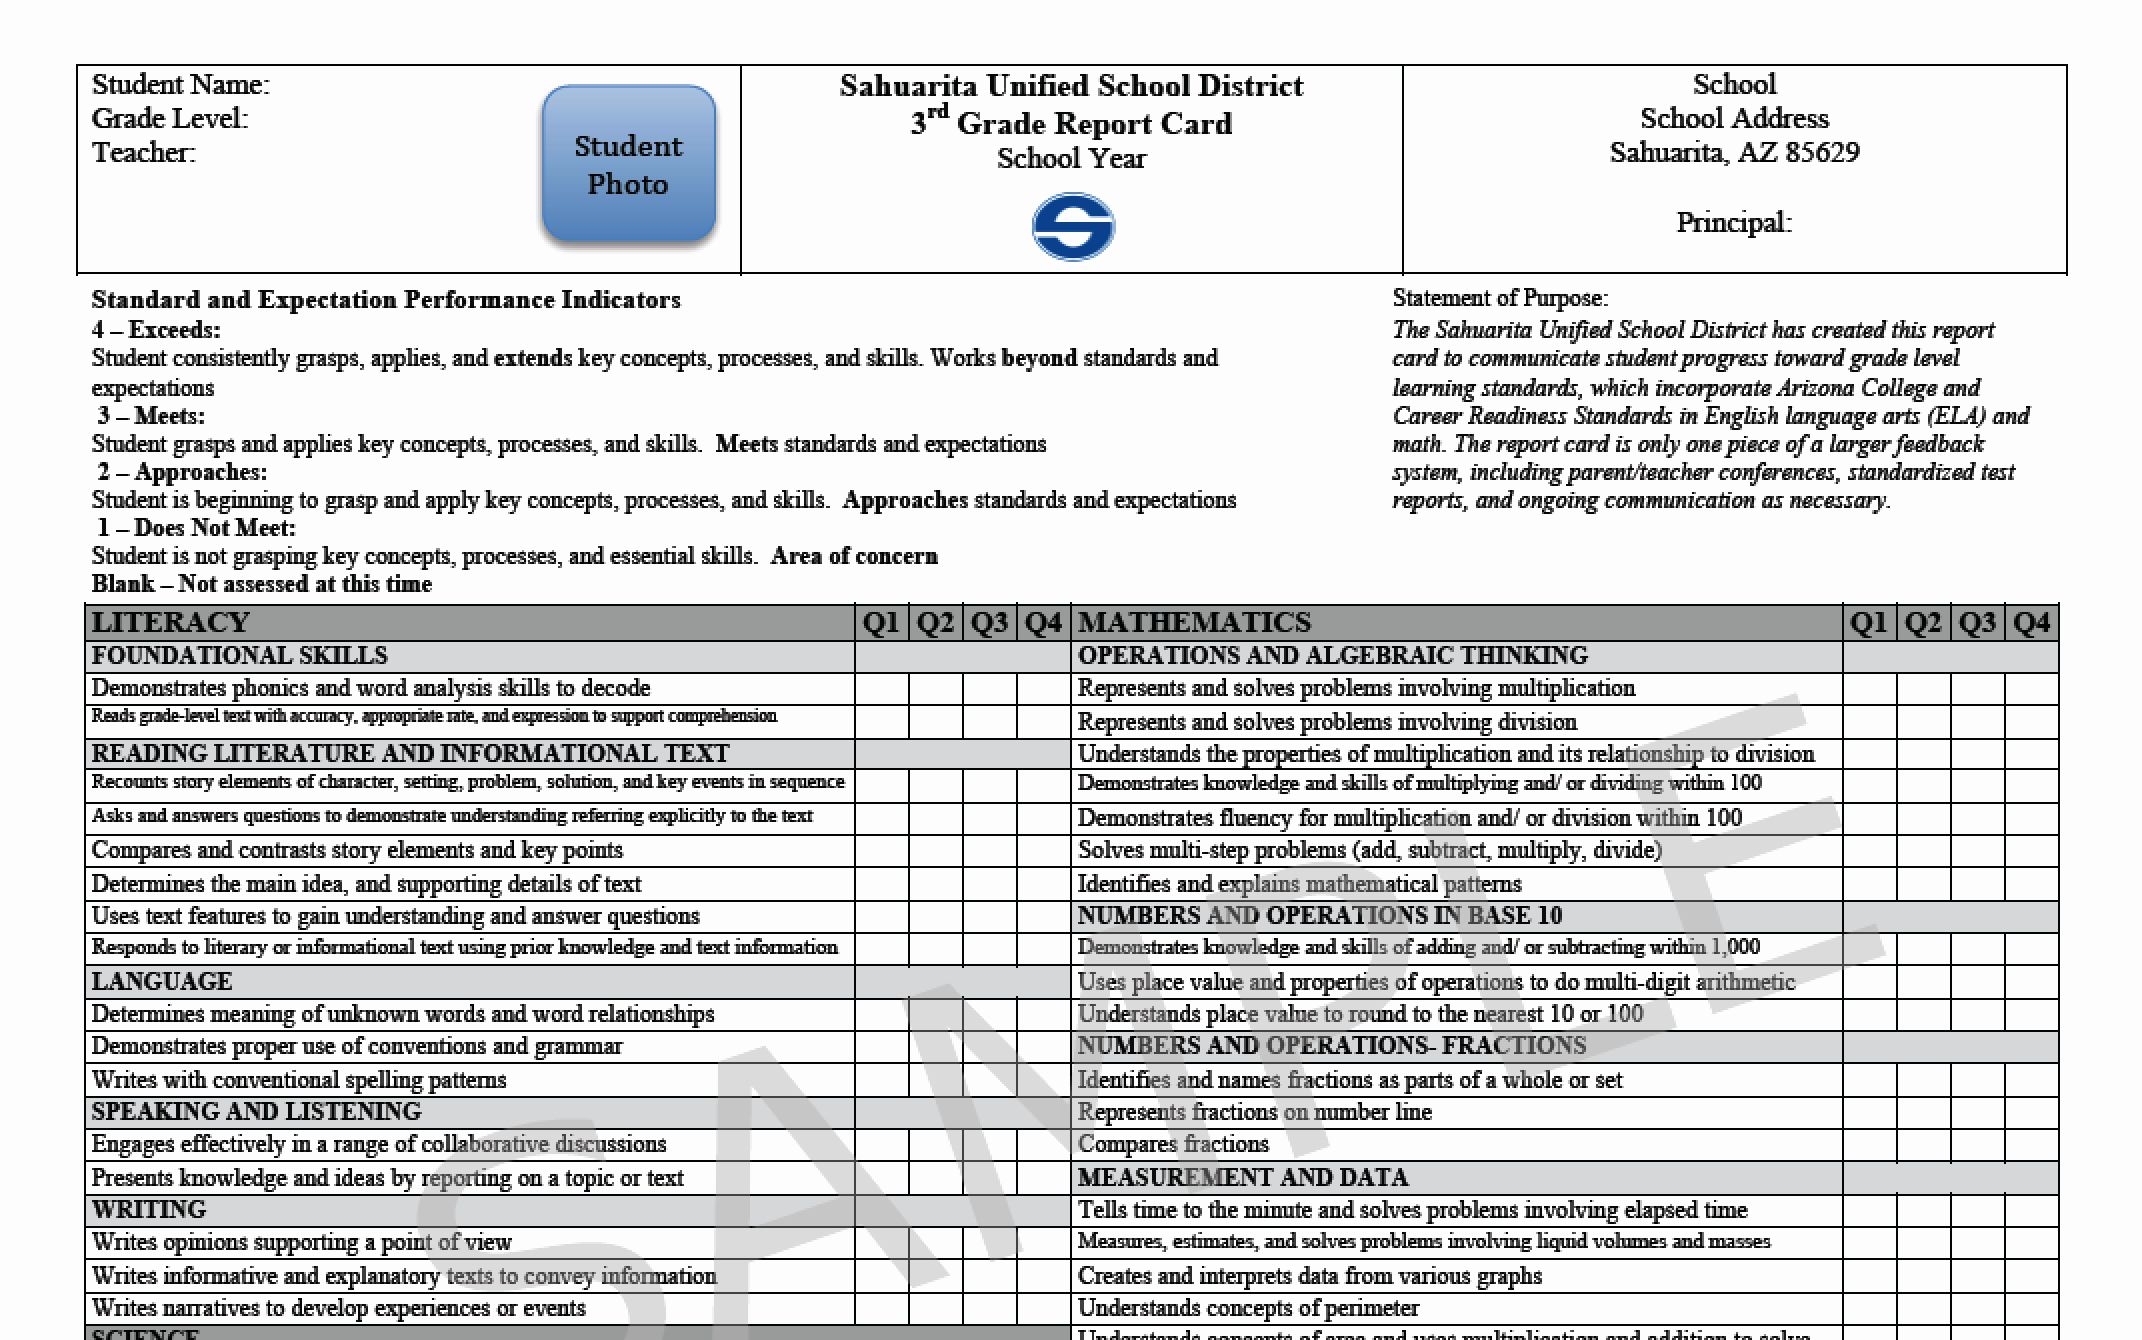 Student Report Card Template Awesome Sahuarita Unified School District Elementary Report Cards